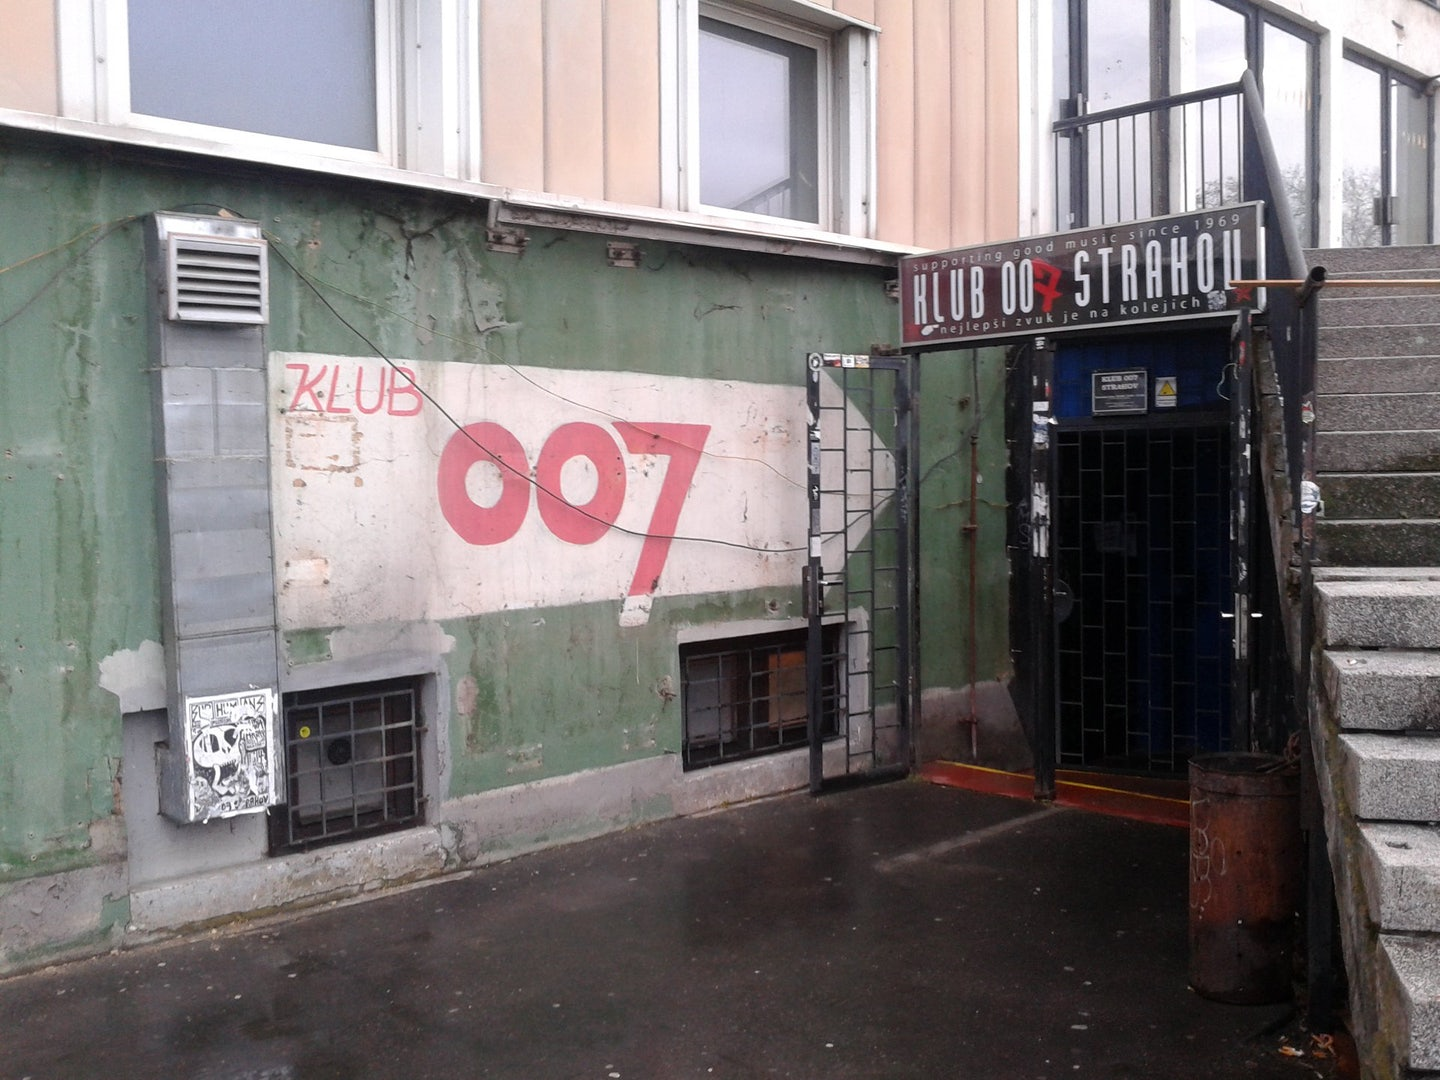 entrance to Klub007 in Prague